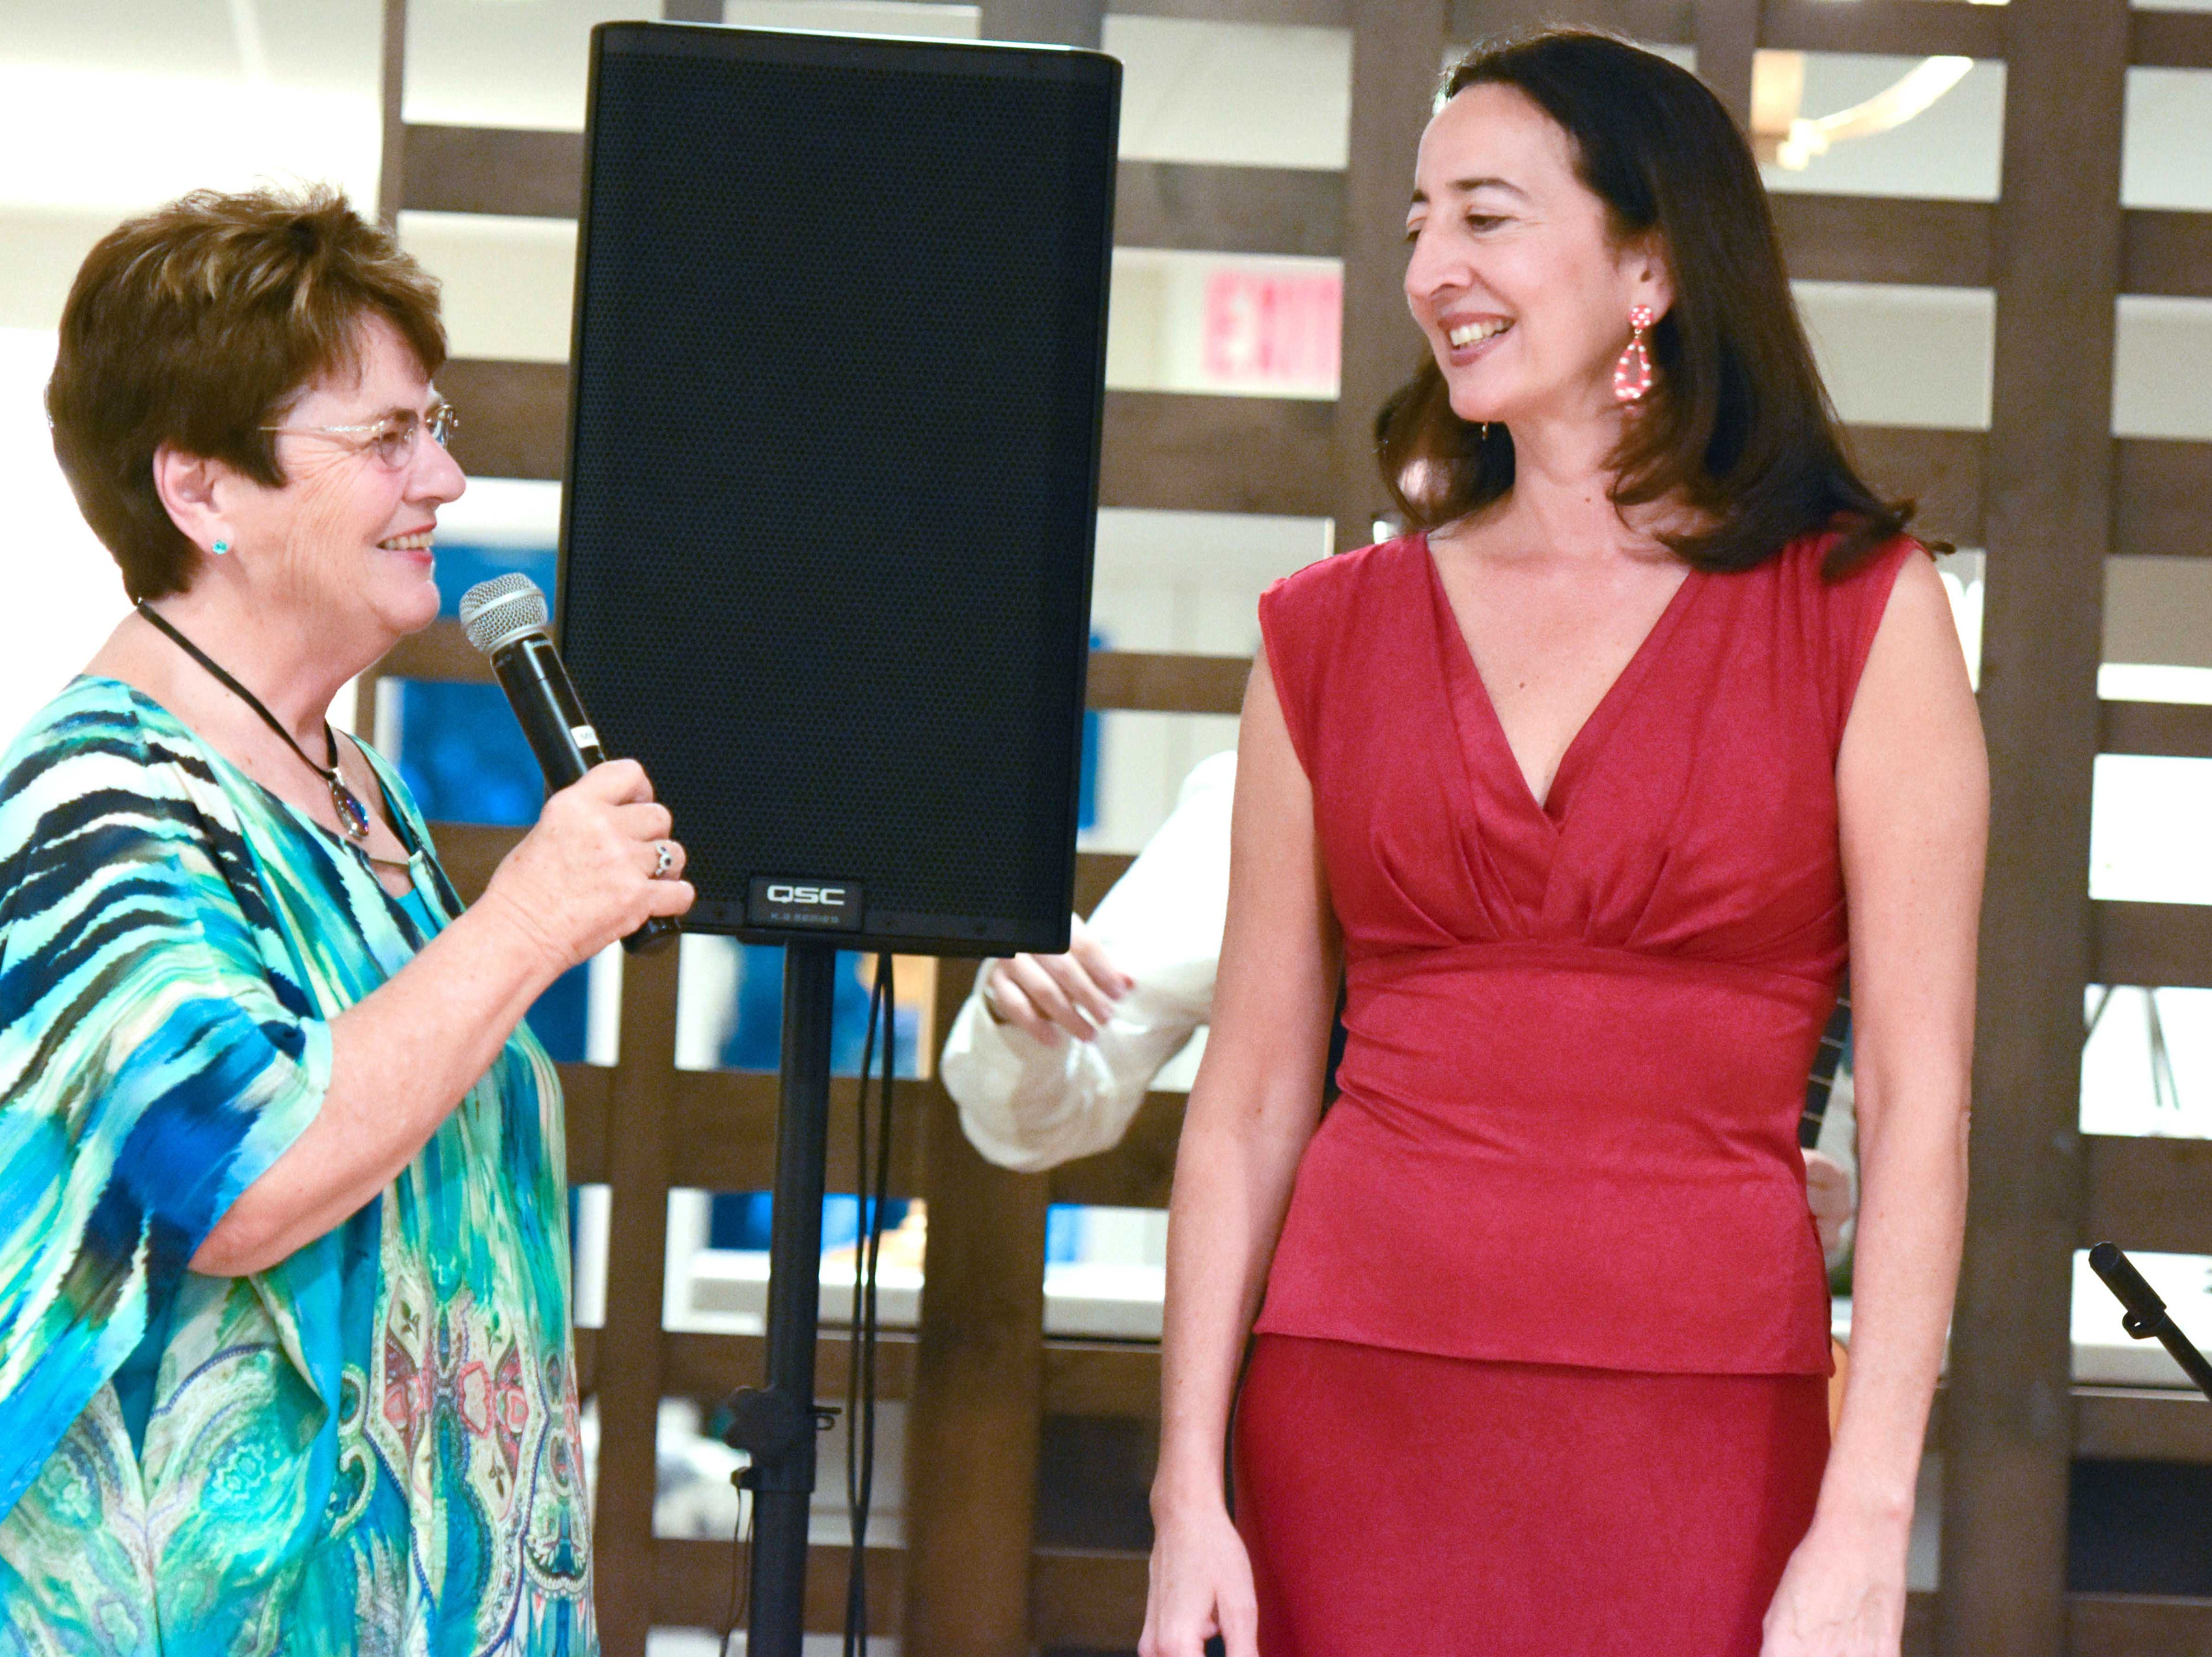 Dr. Marie Jureit-Beamish, left, asks questions of the evening's guest performer Eva Conti at the Stuart Friends of the Atlantic Classical Orchestra's Meet the Artist Dinner at the Stuart Yacht & Country Club.